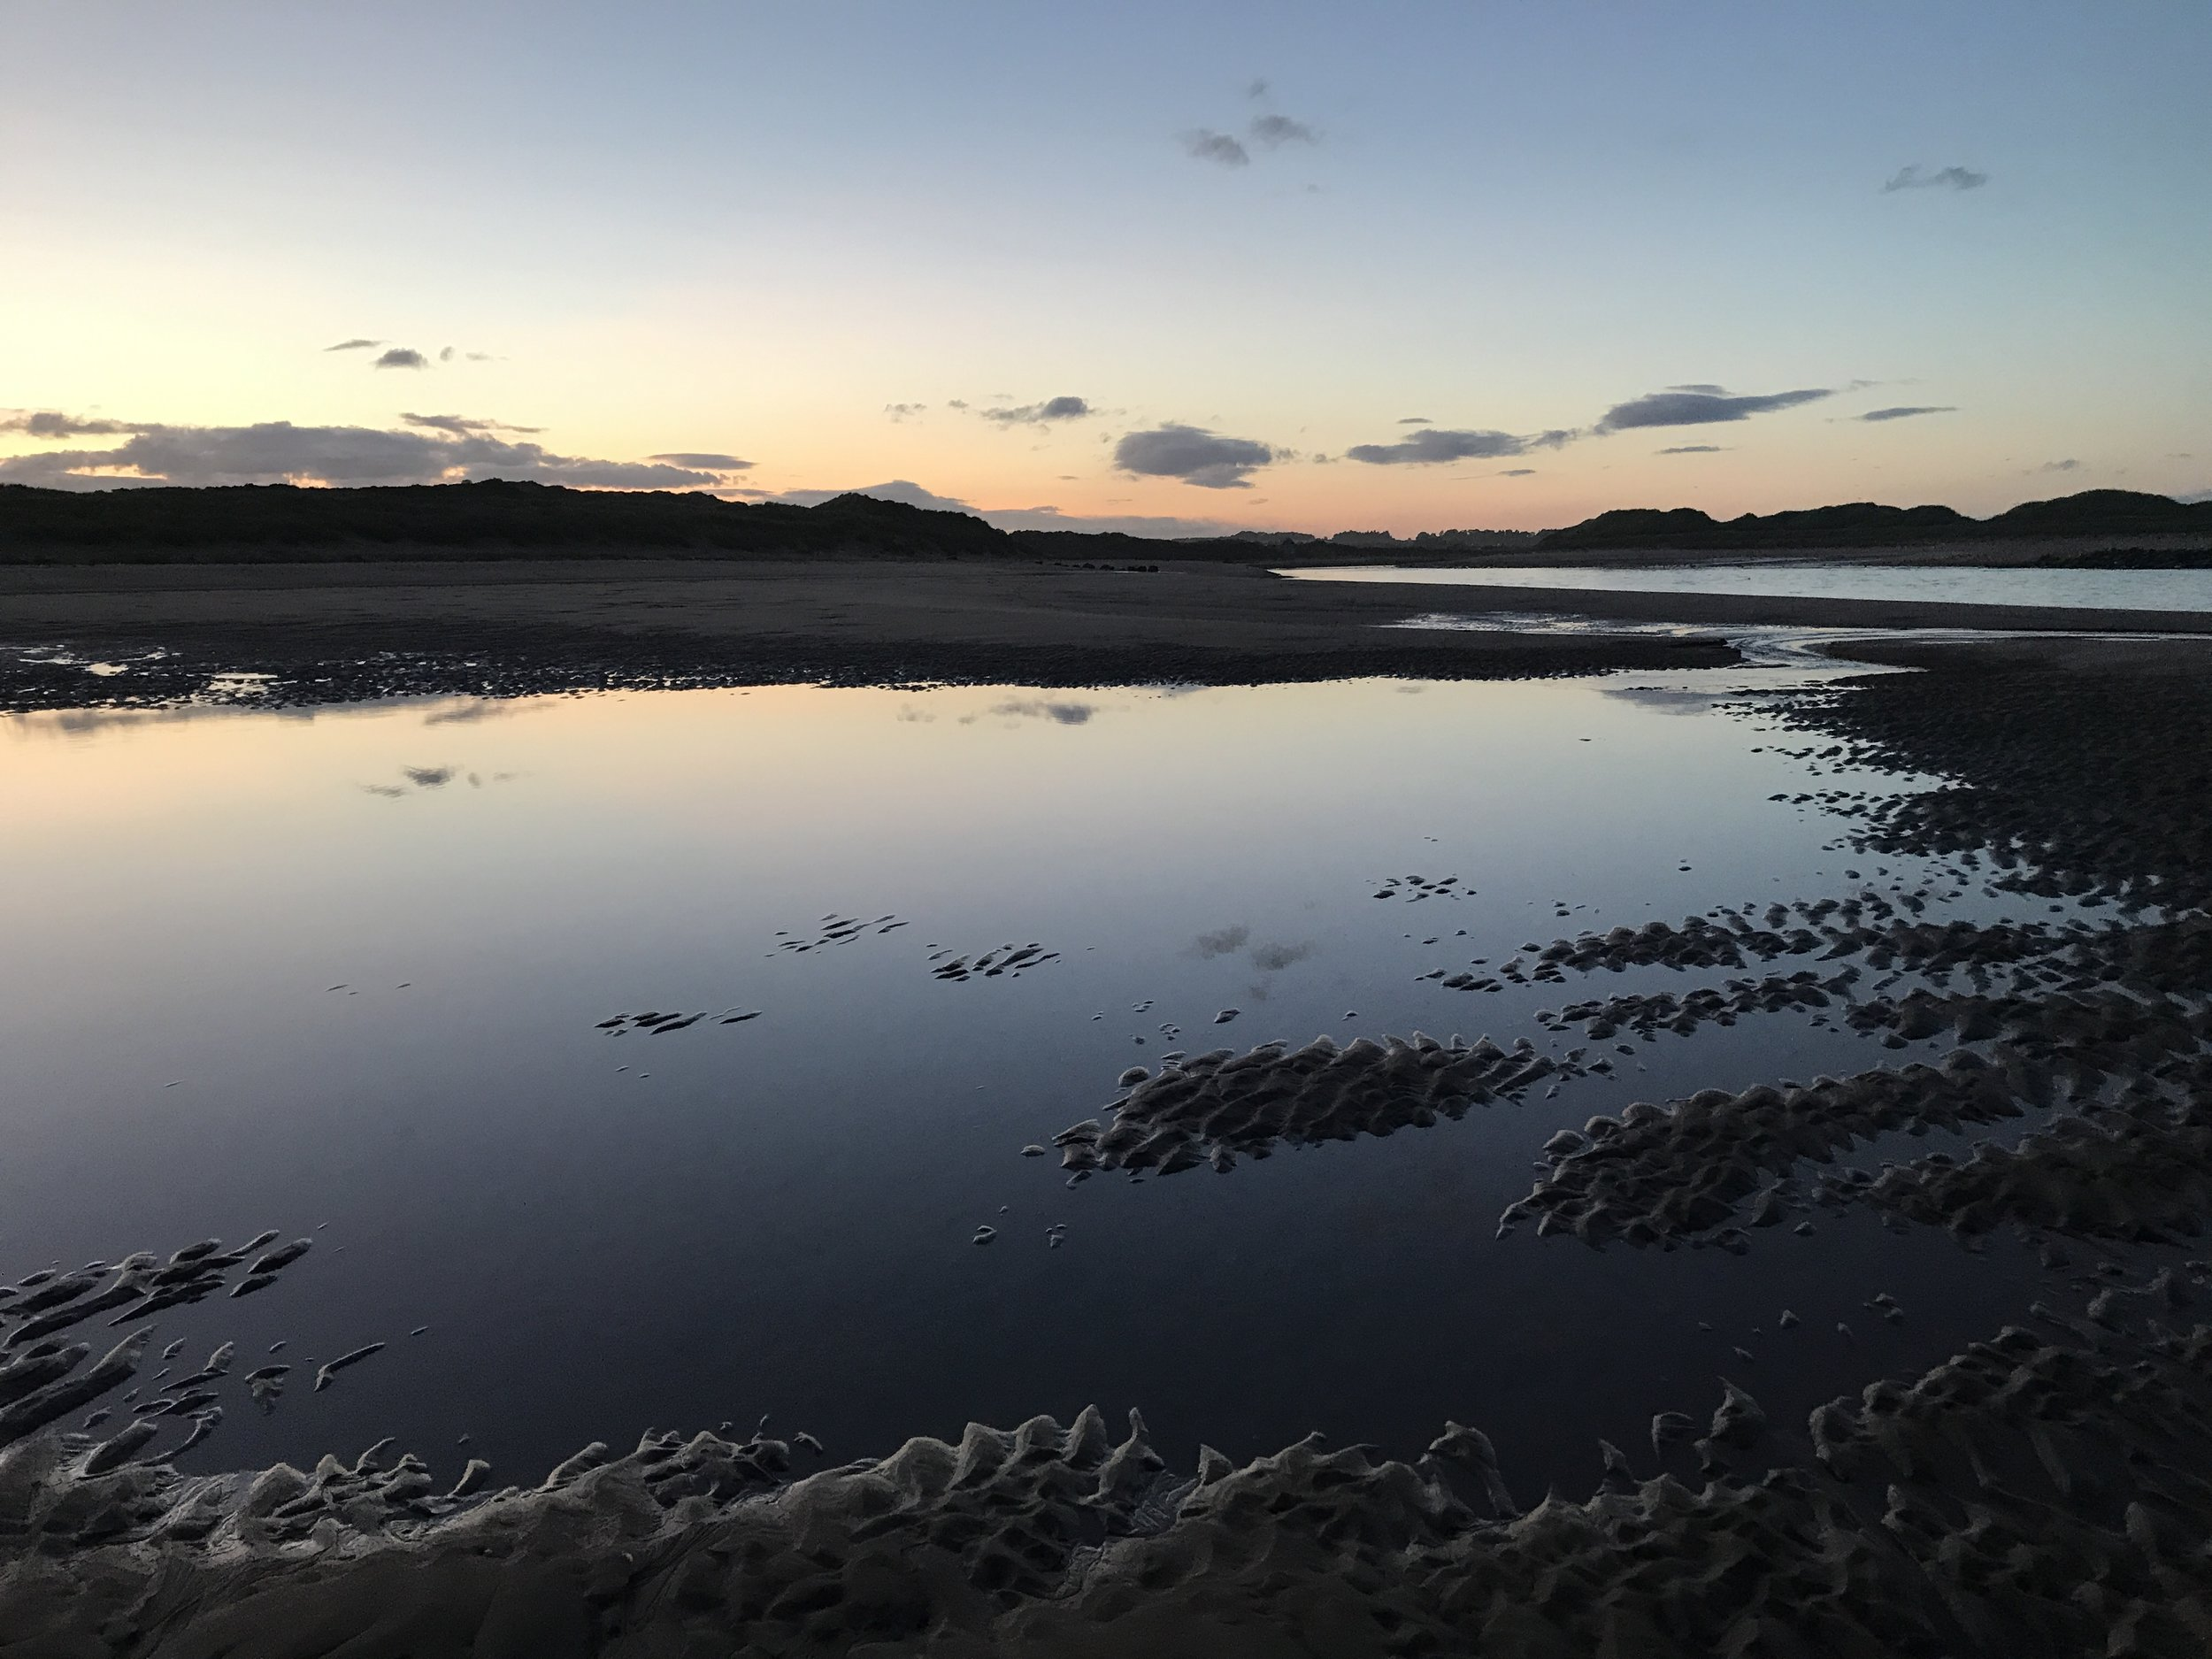 Sunset at Newburgh beach / Ythan estuary.